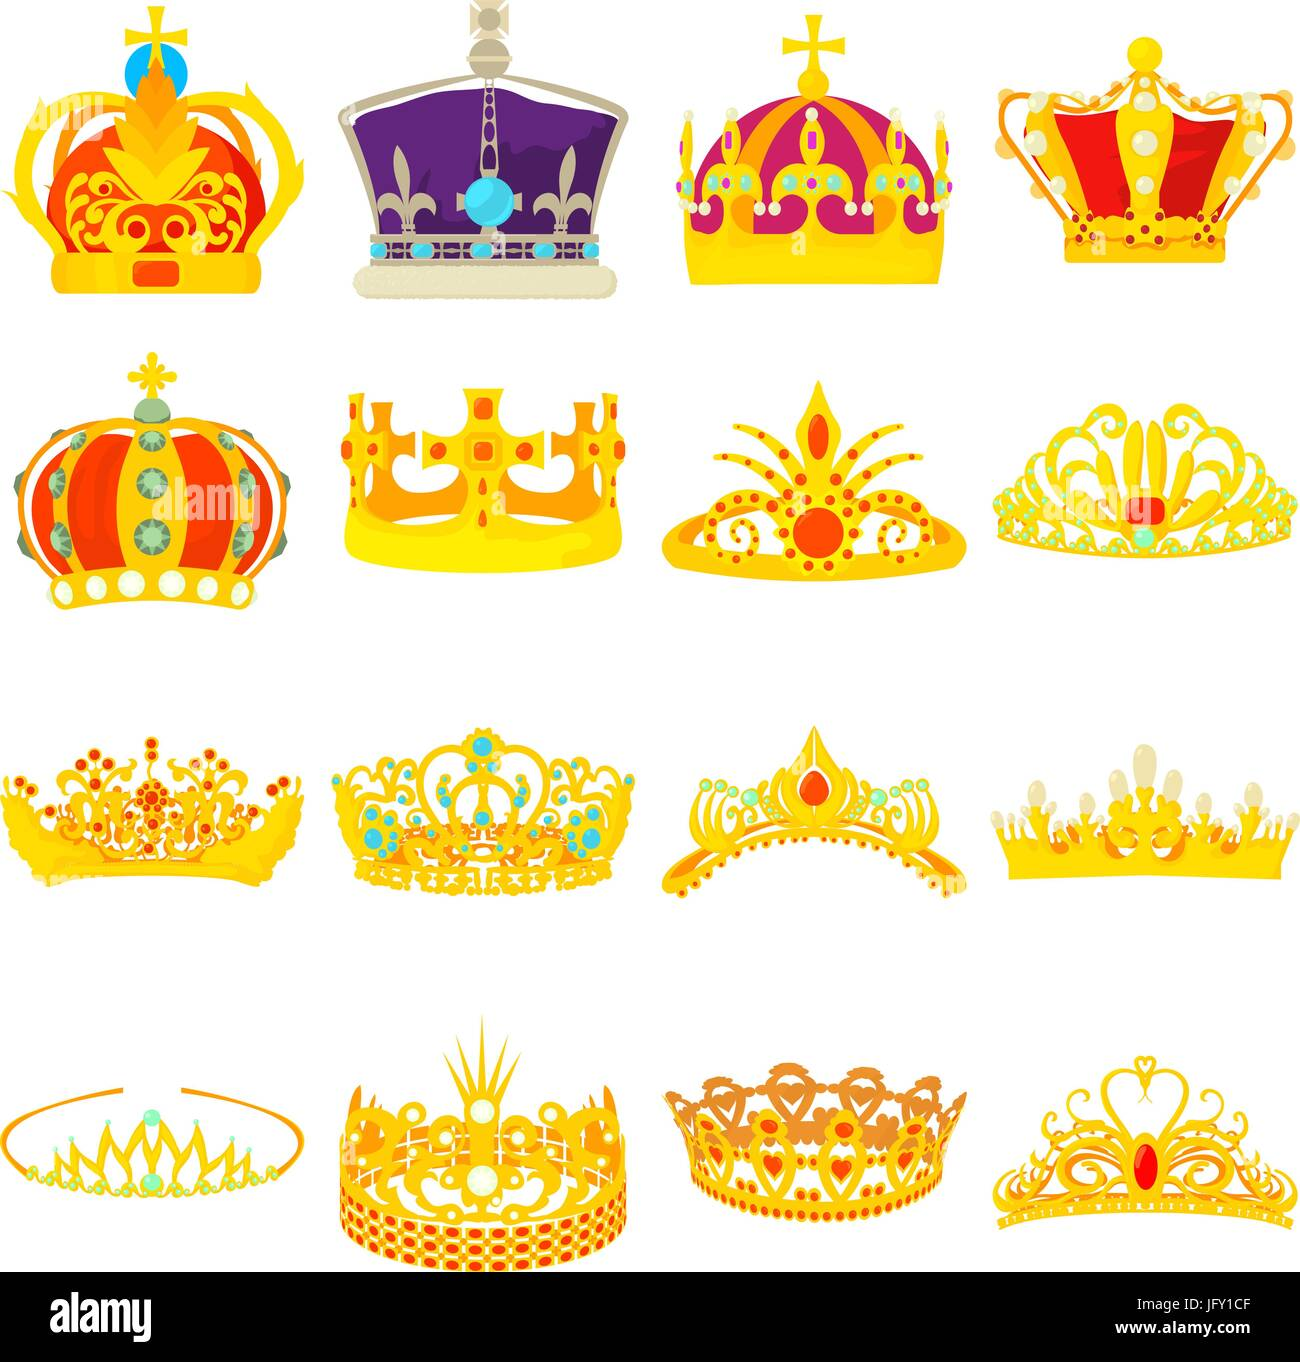 Cartoon Royal Crown High Resolution Stock Photography And Images Alamy Your cartoon crown stock images are ready. https www alamy com stock photo crown royal icons set cartoon style 147496623 html